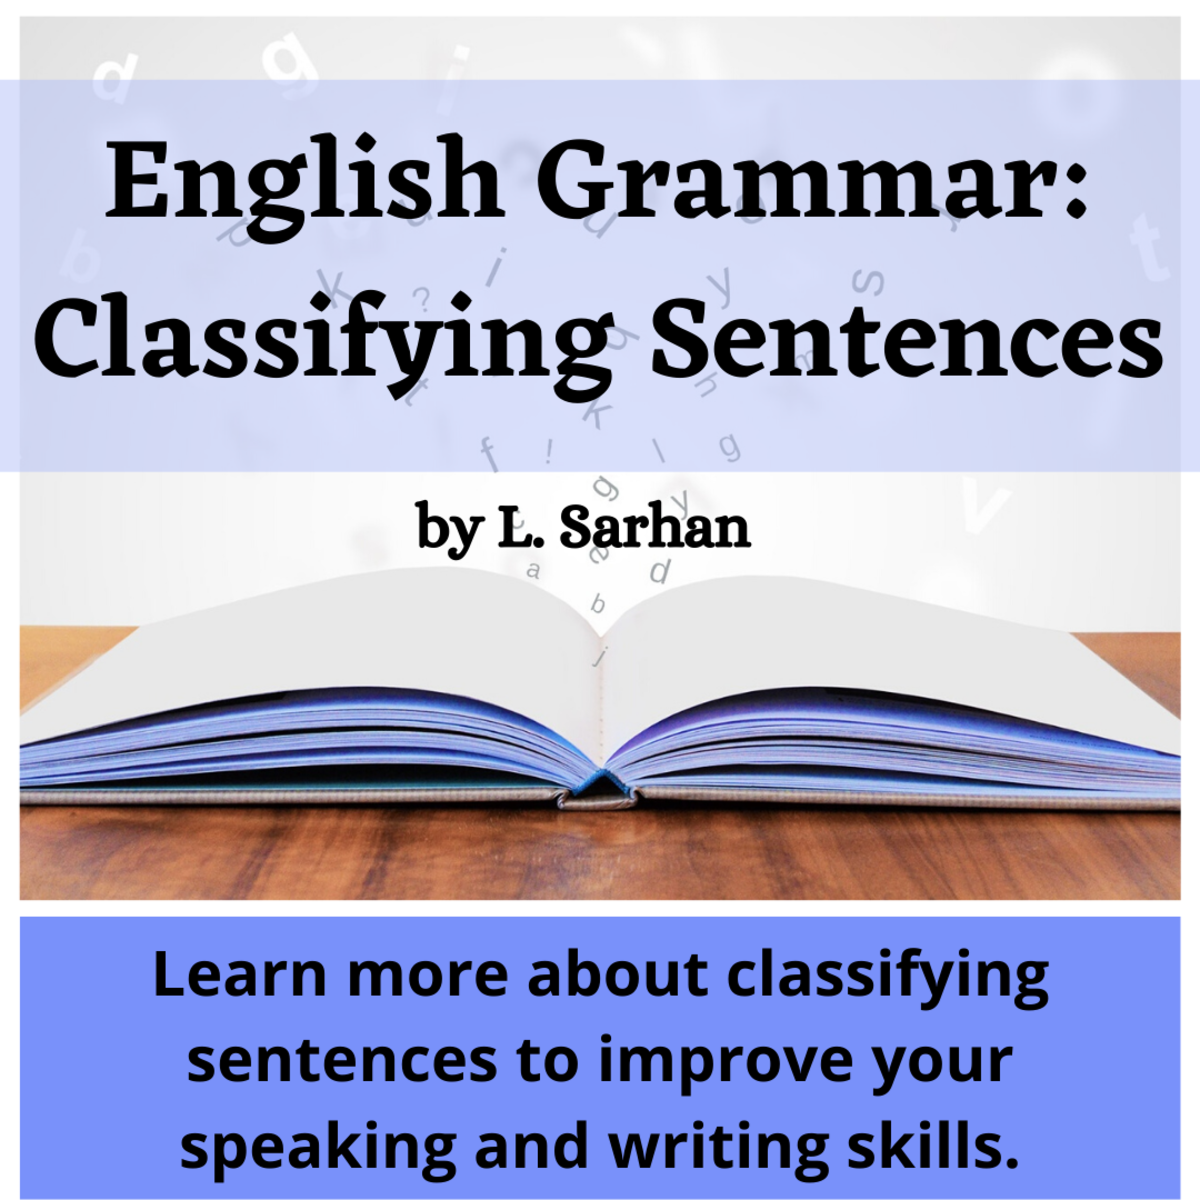 English grammar can be difficult and confusing at times, even for native speakers. Learn more about classifying sentences to improve your speaking and writing skills.